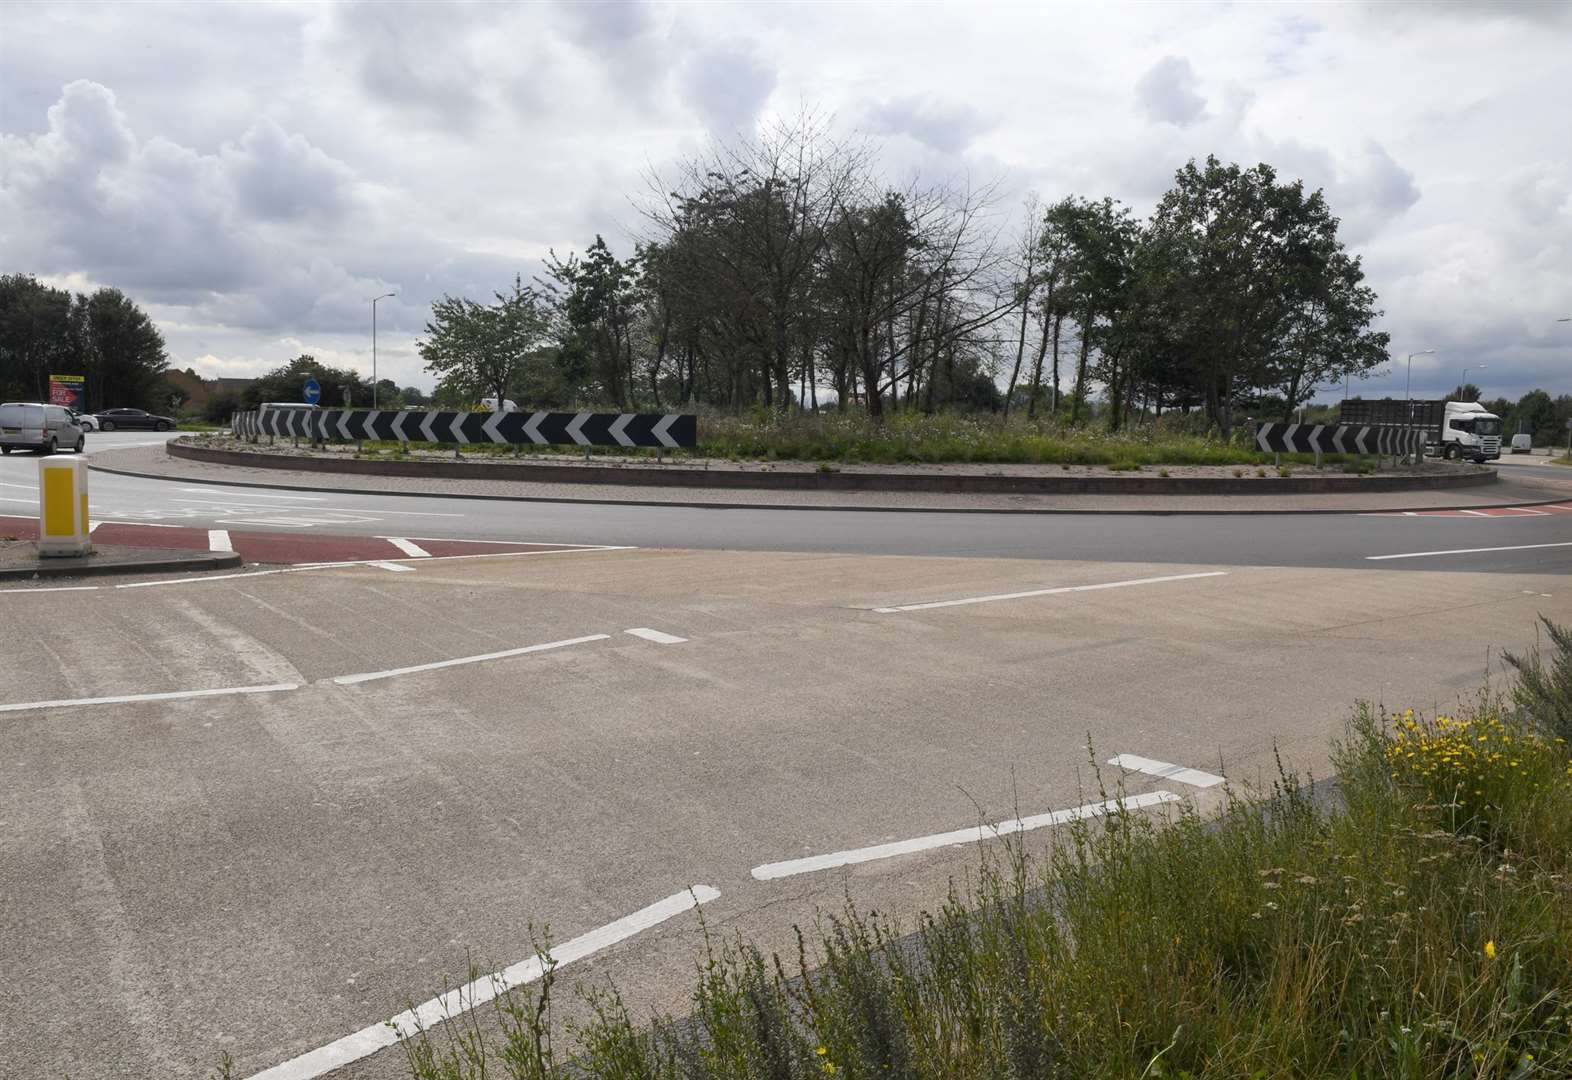 Roundabout revealed as one of Britain's worst